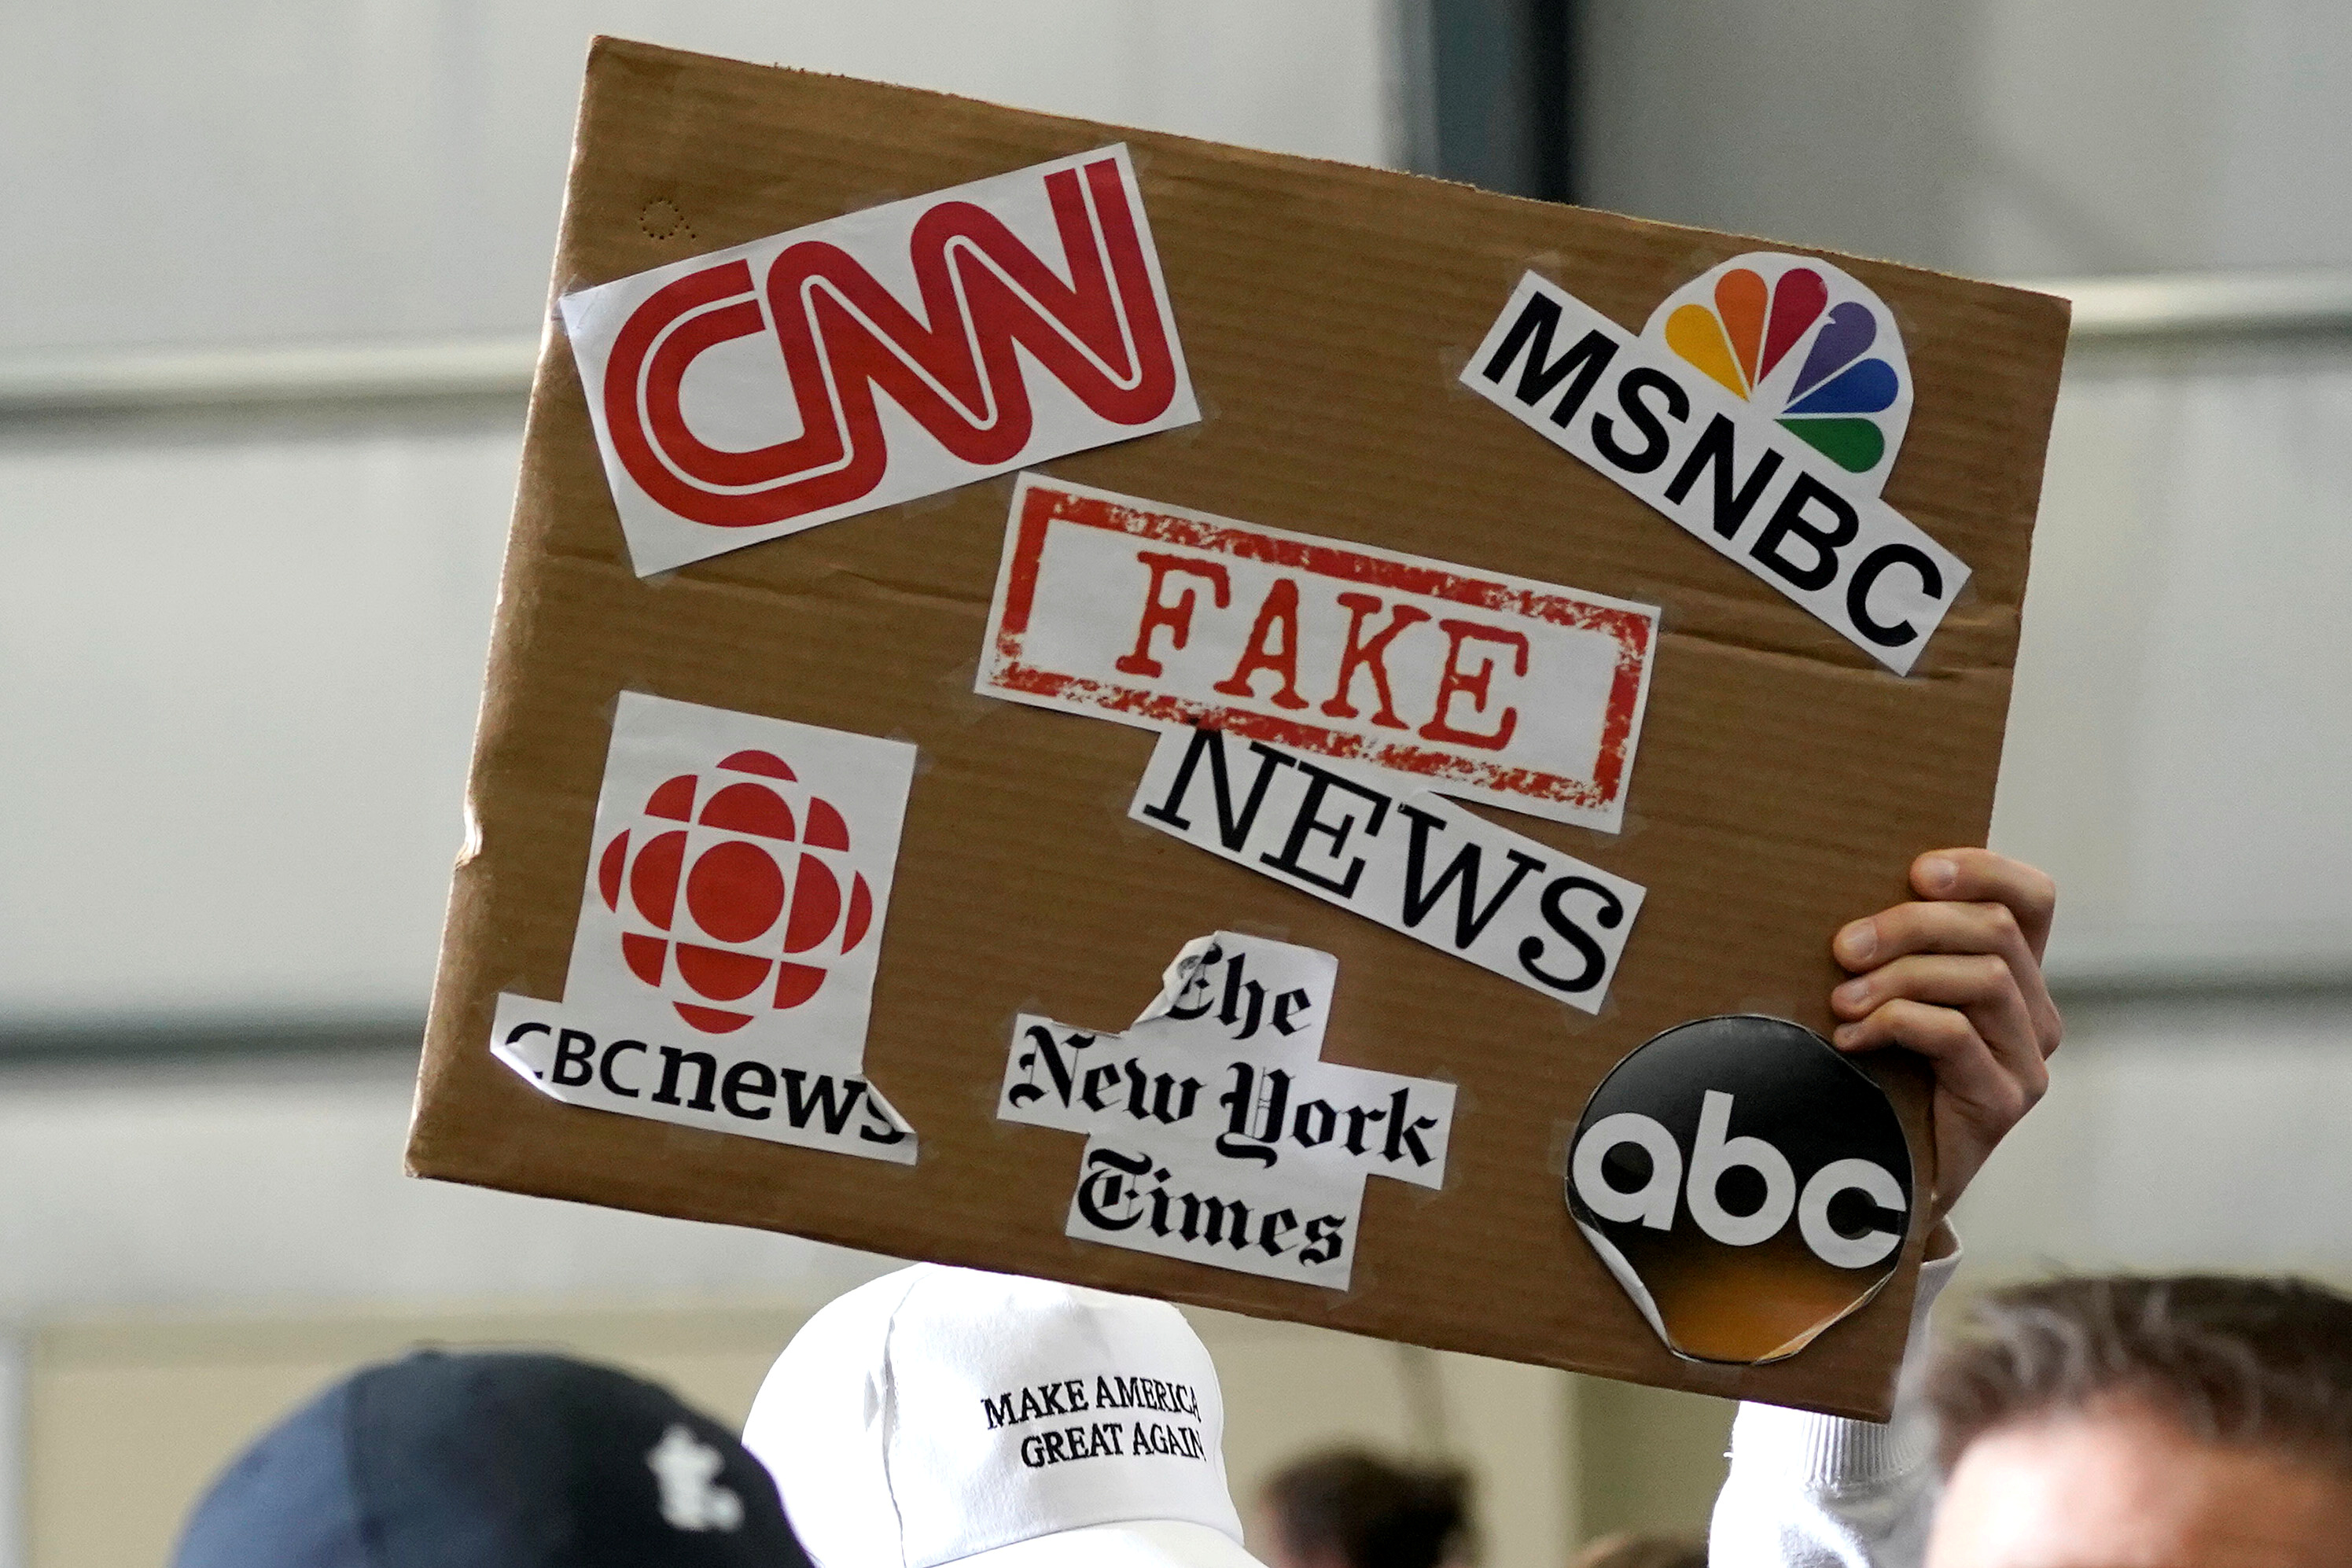 A sign showing major news organizations along with the words